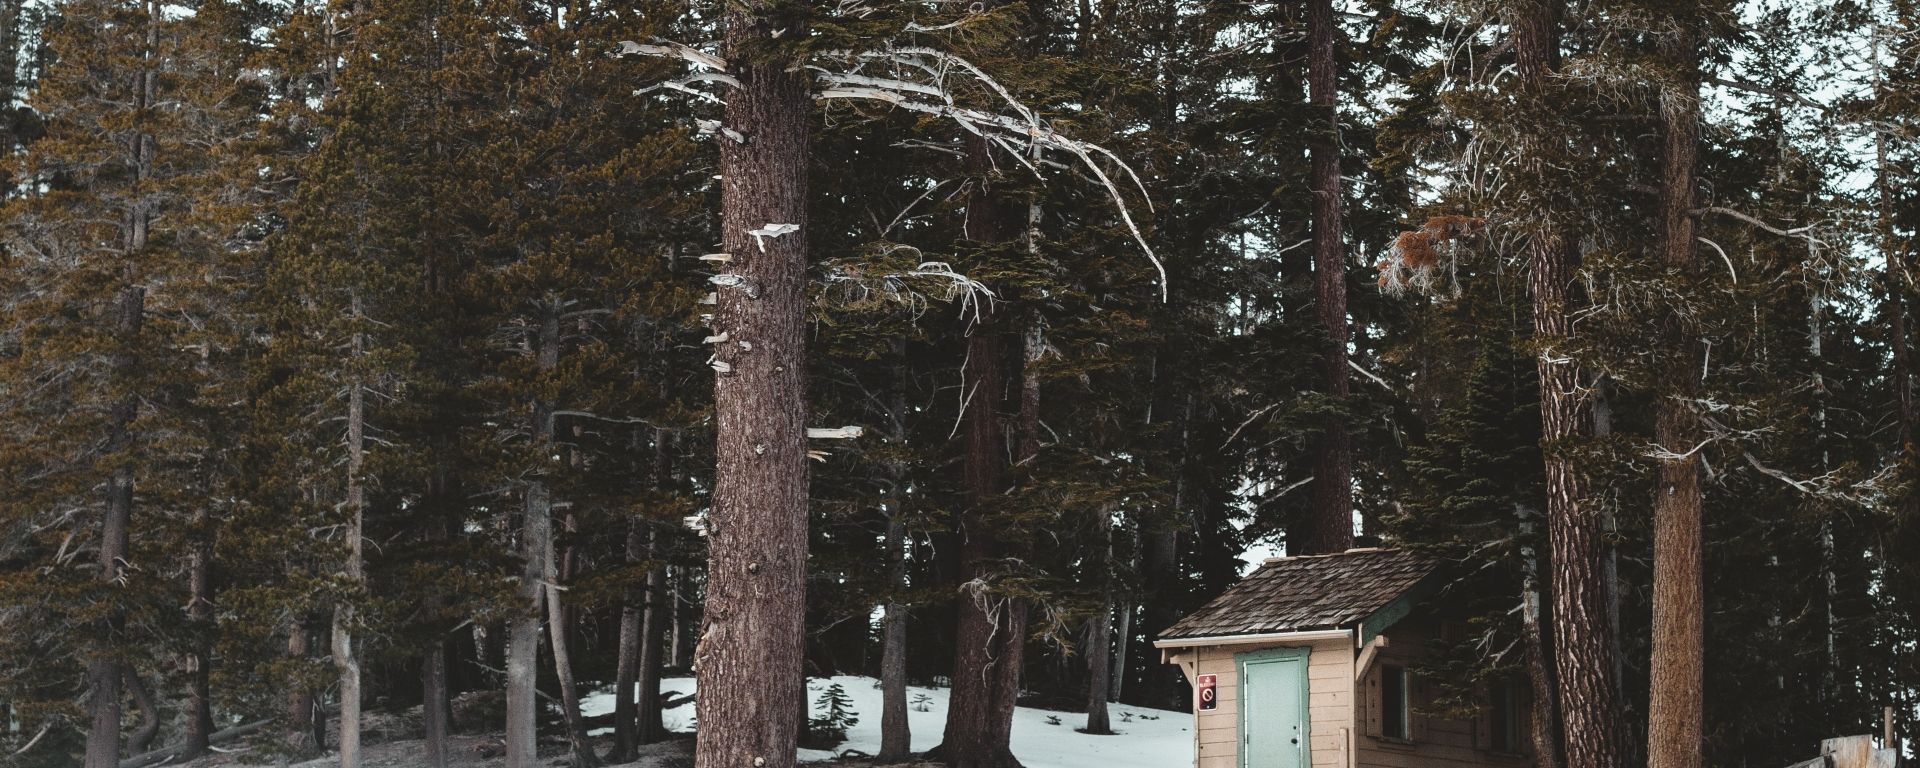 An image of a small cabin in a snowy forest.